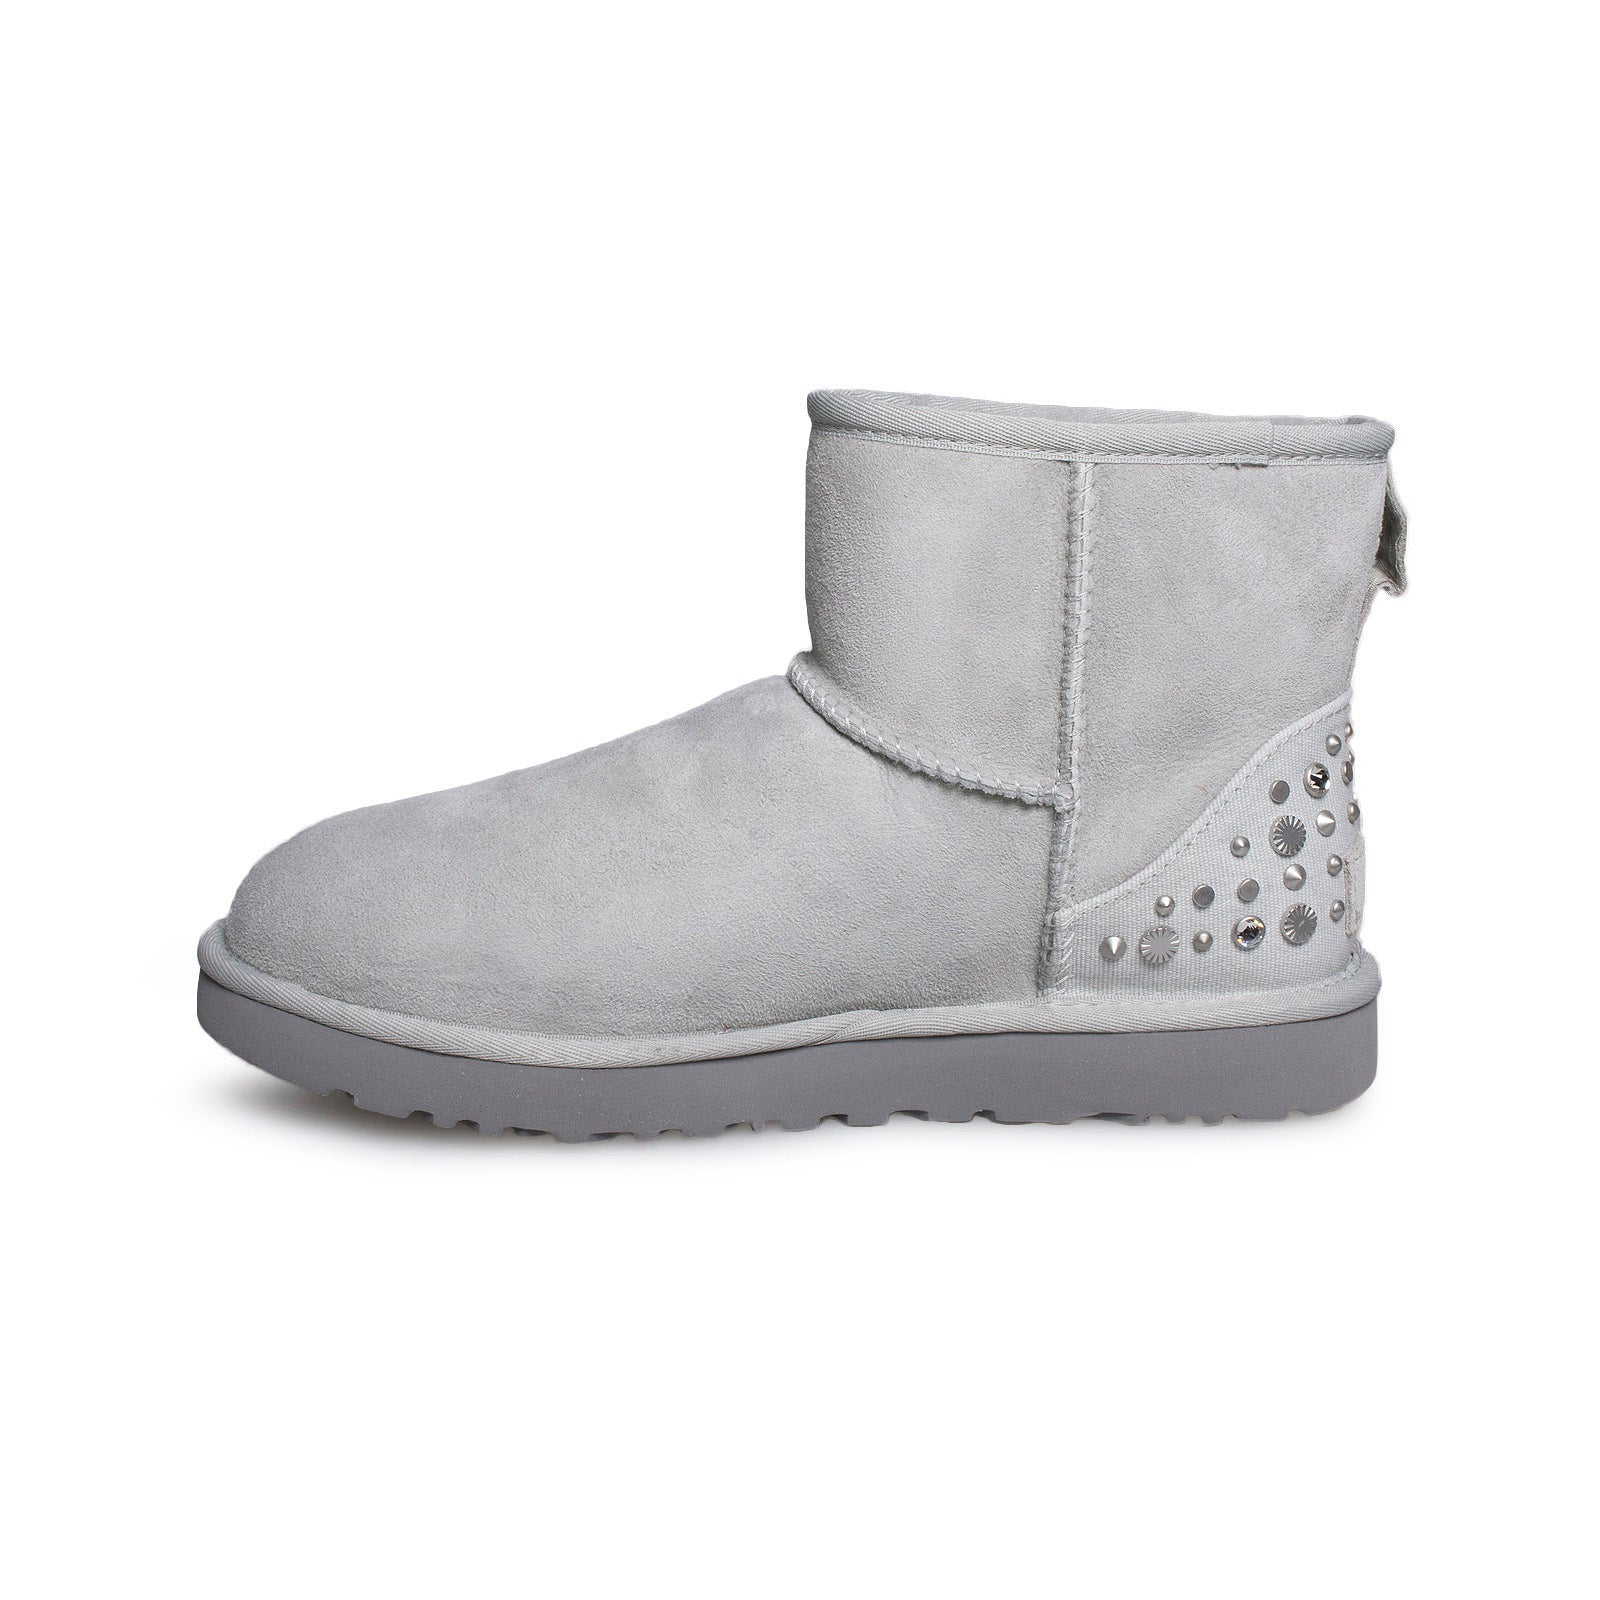 Ugg Studded Violet Bling Mycozyboots Classic Mini Grey Boots Women's gqrgR